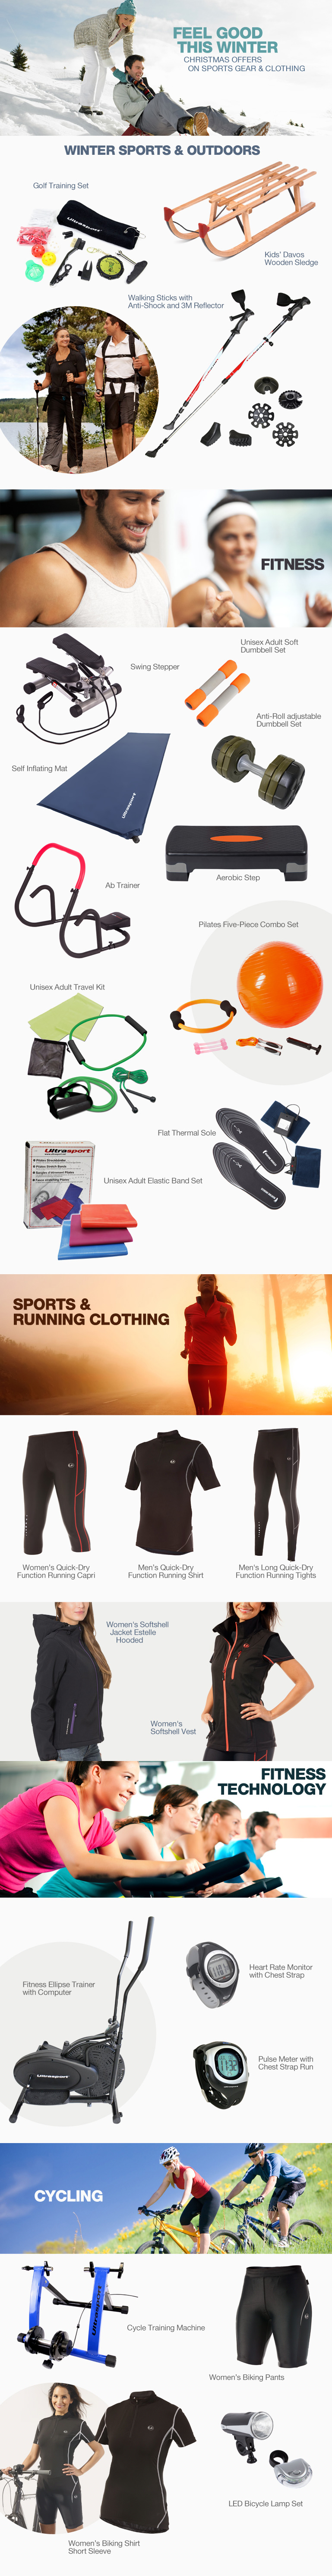 Ultrasport | Feel Good this Winter